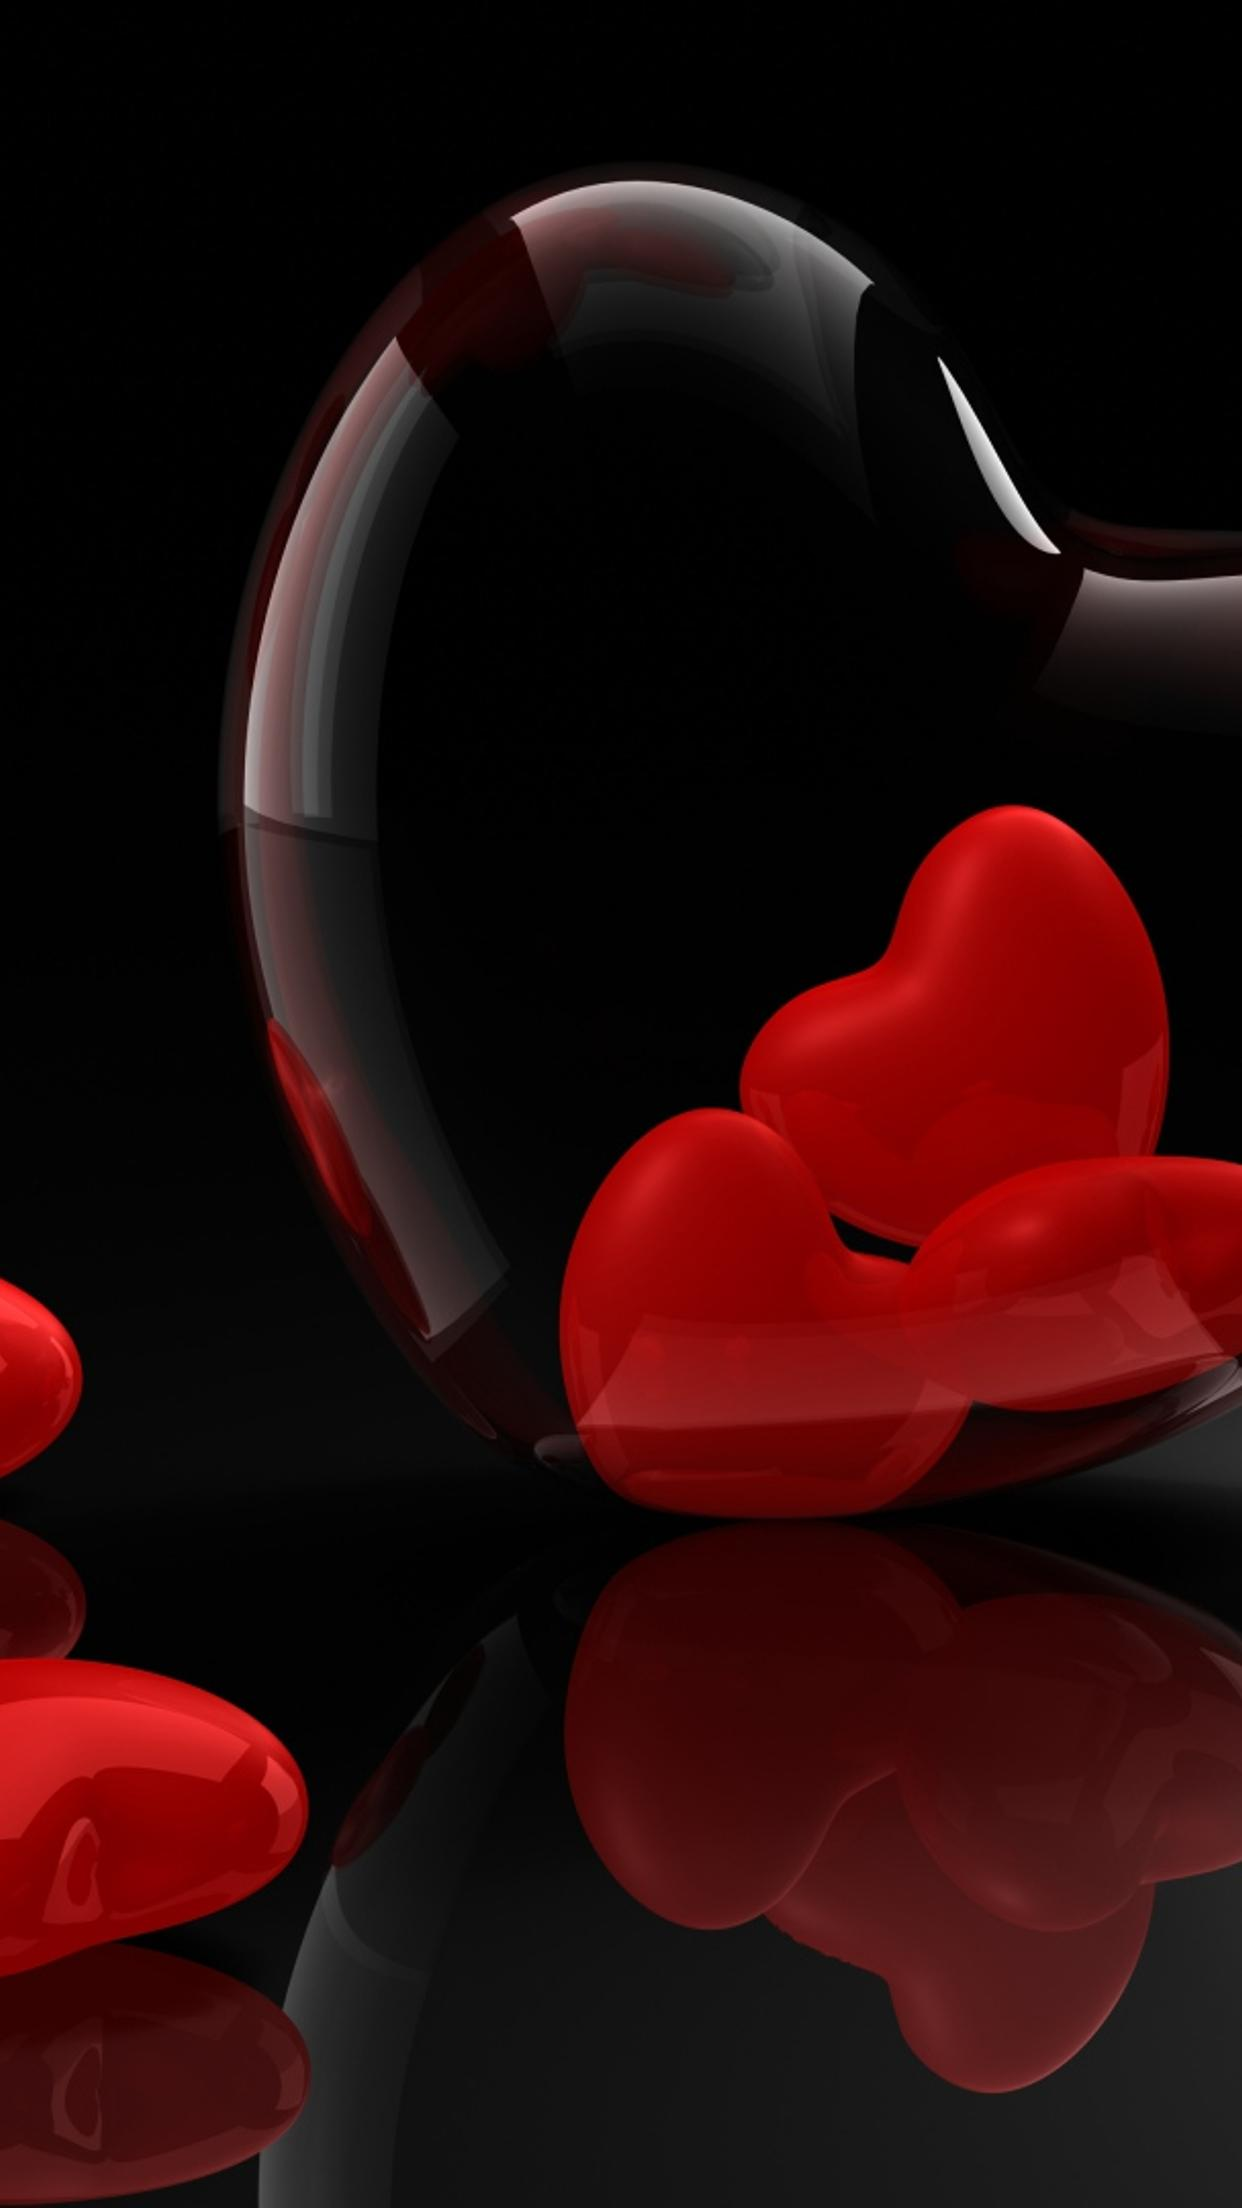 Many 3D Red Hearts On Black Background Wallpaper Download 1242x2208